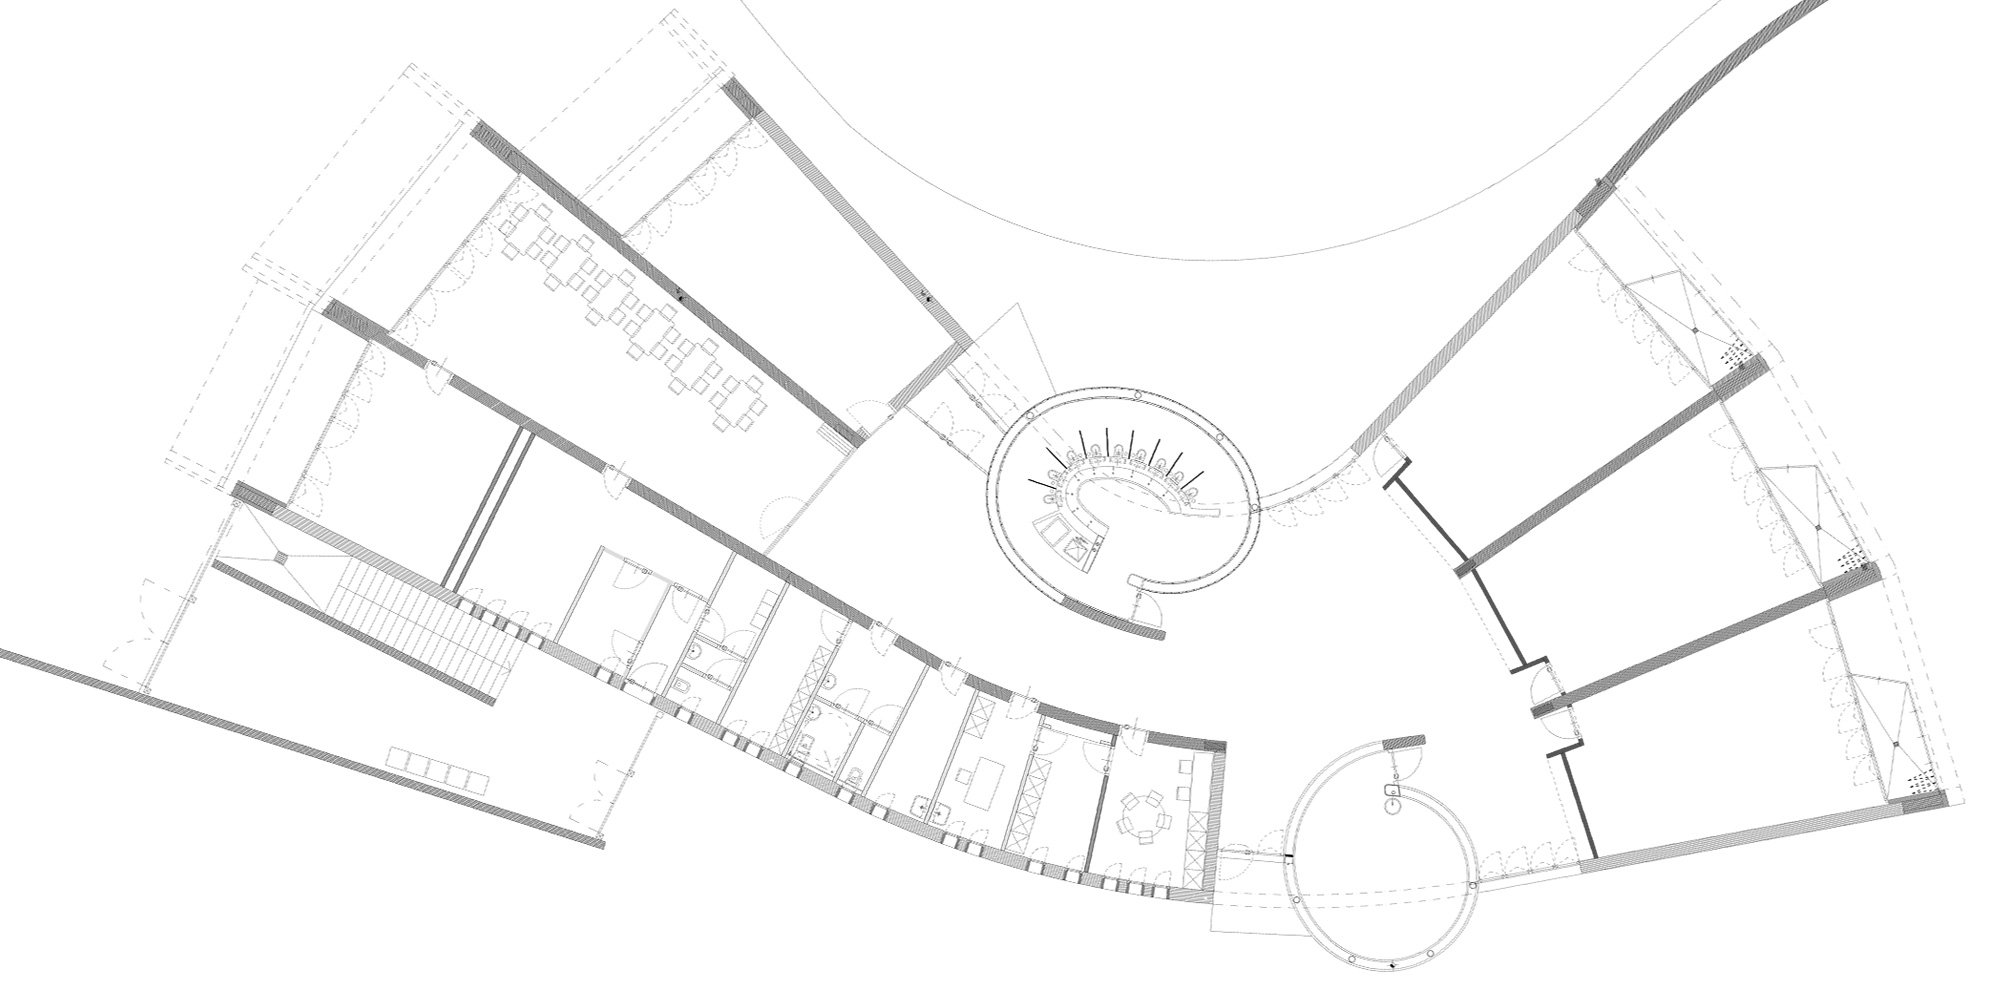 Ground Floor Plan © FontanAtelier